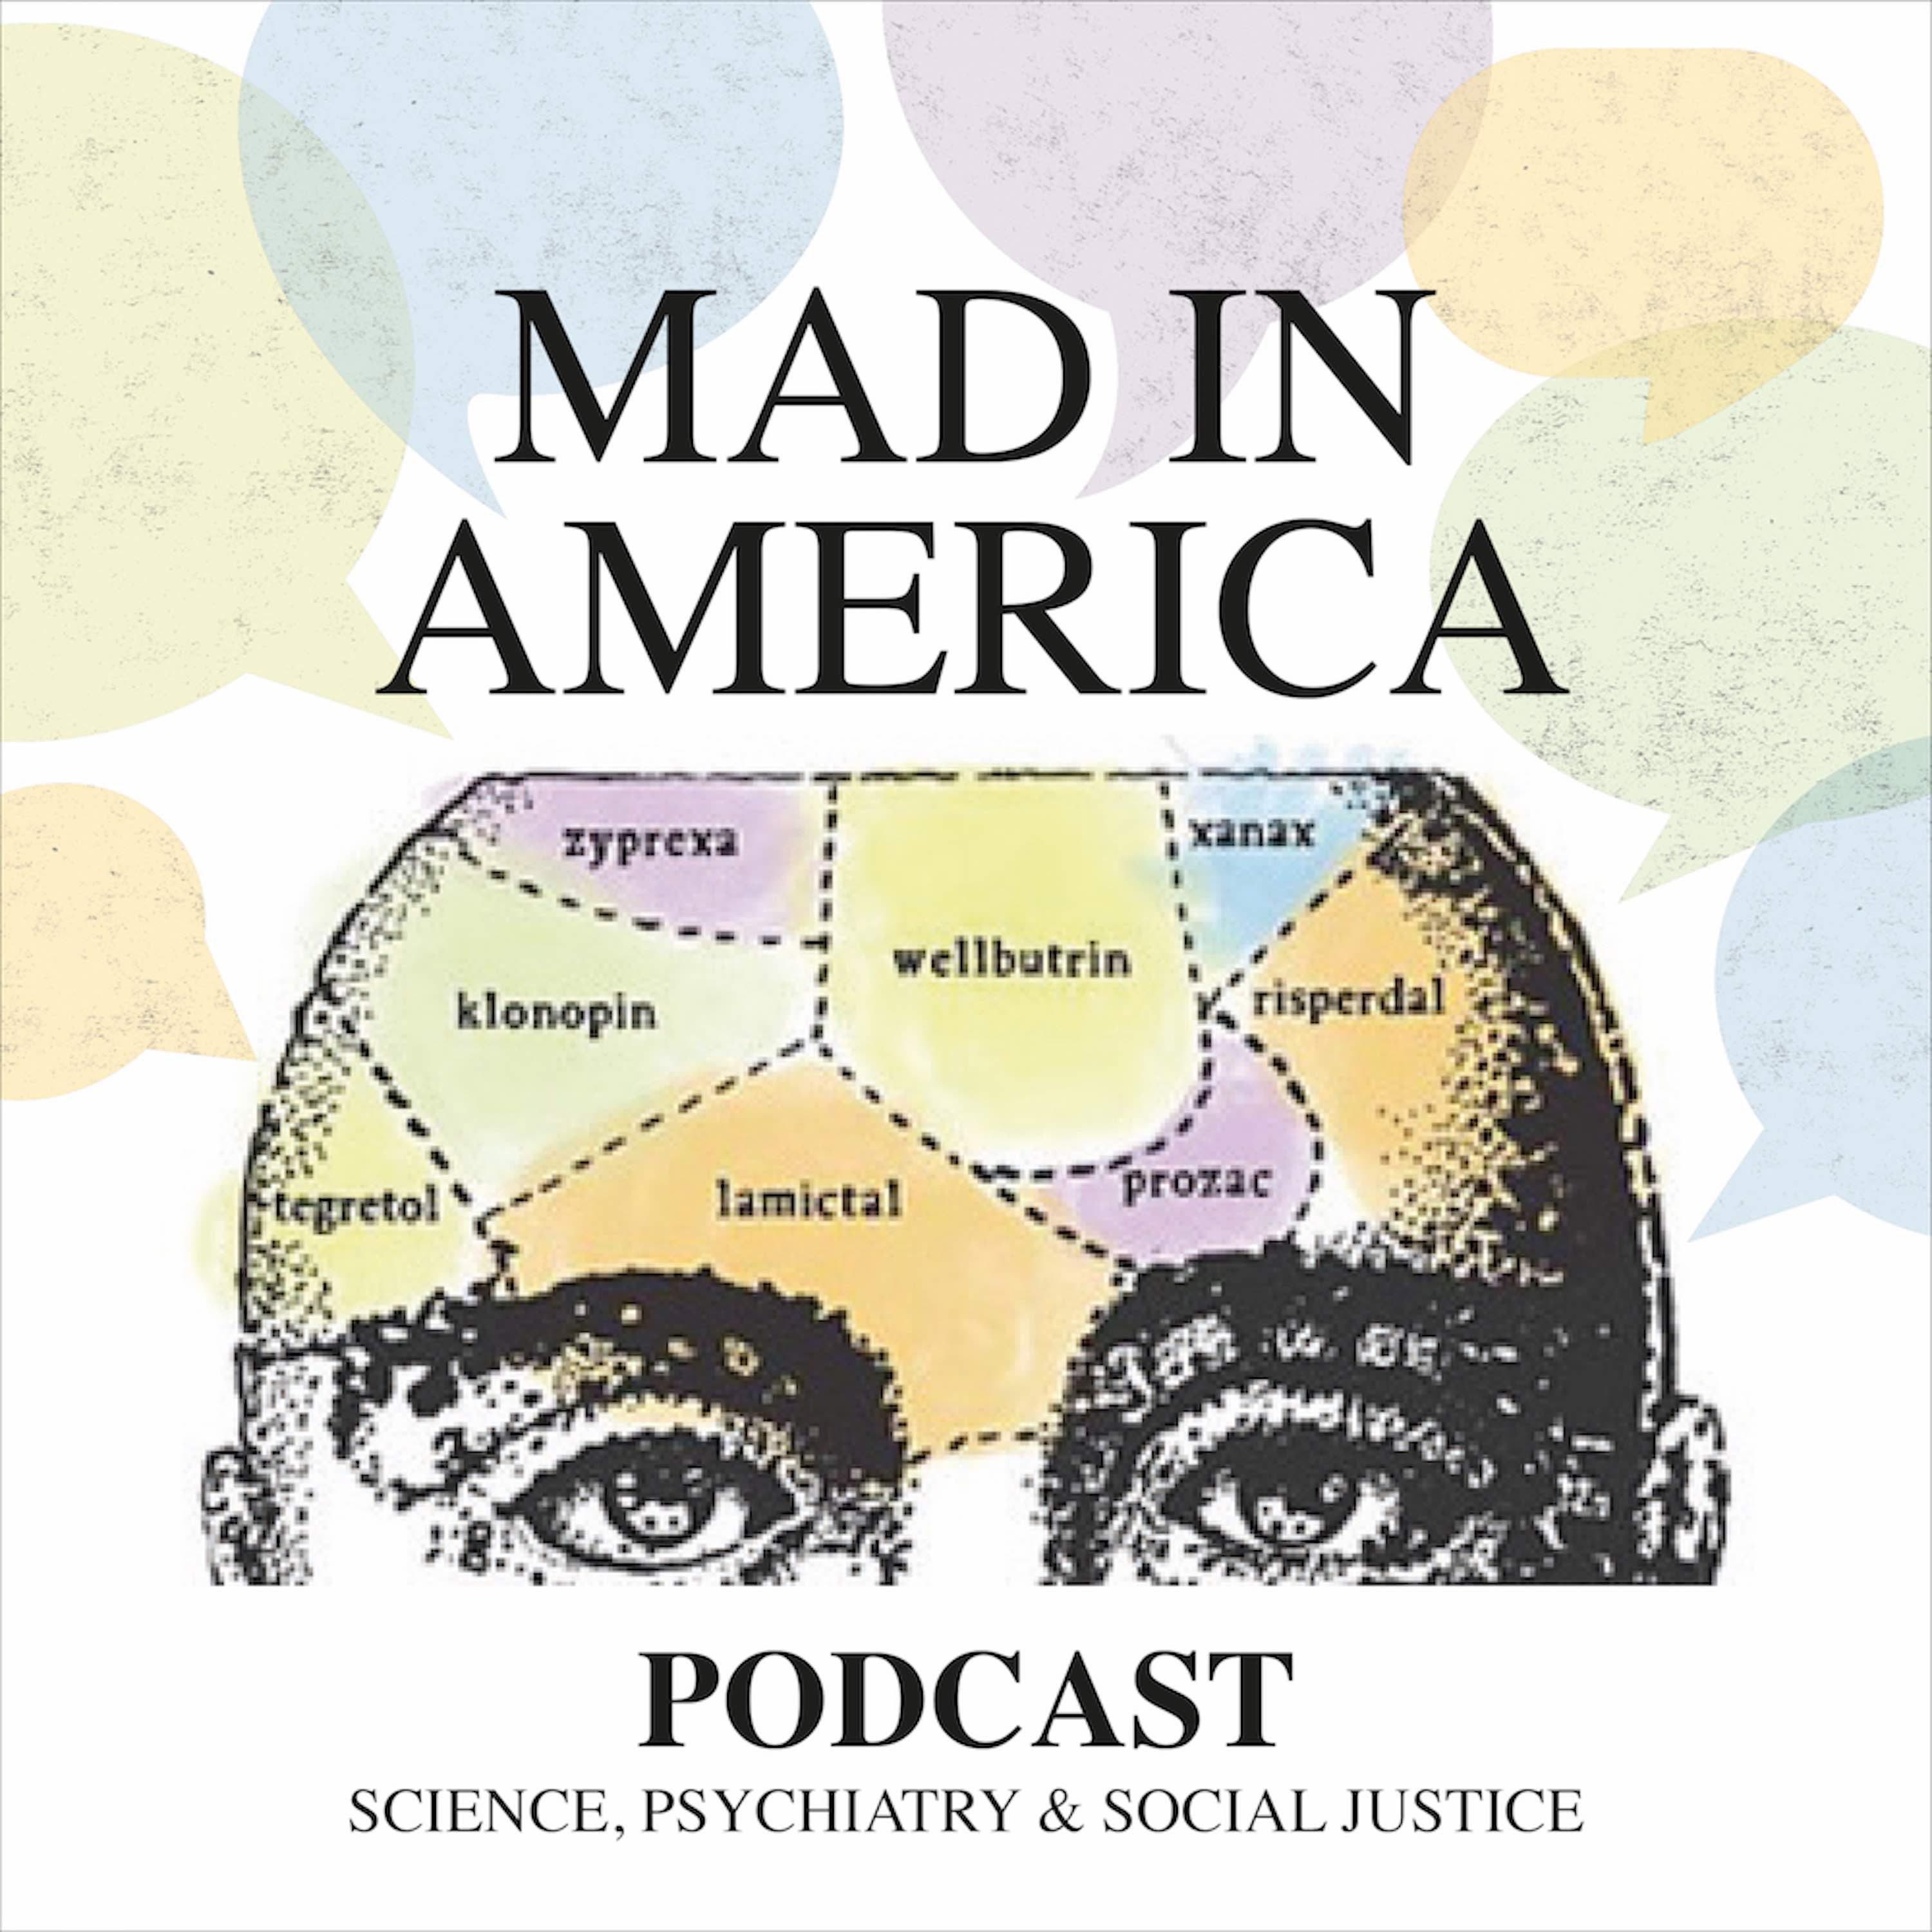 Mad in America: Rethinking Mental Health - Jay Joseph - Why Schizophrenia Genetic Research is Running on Empty